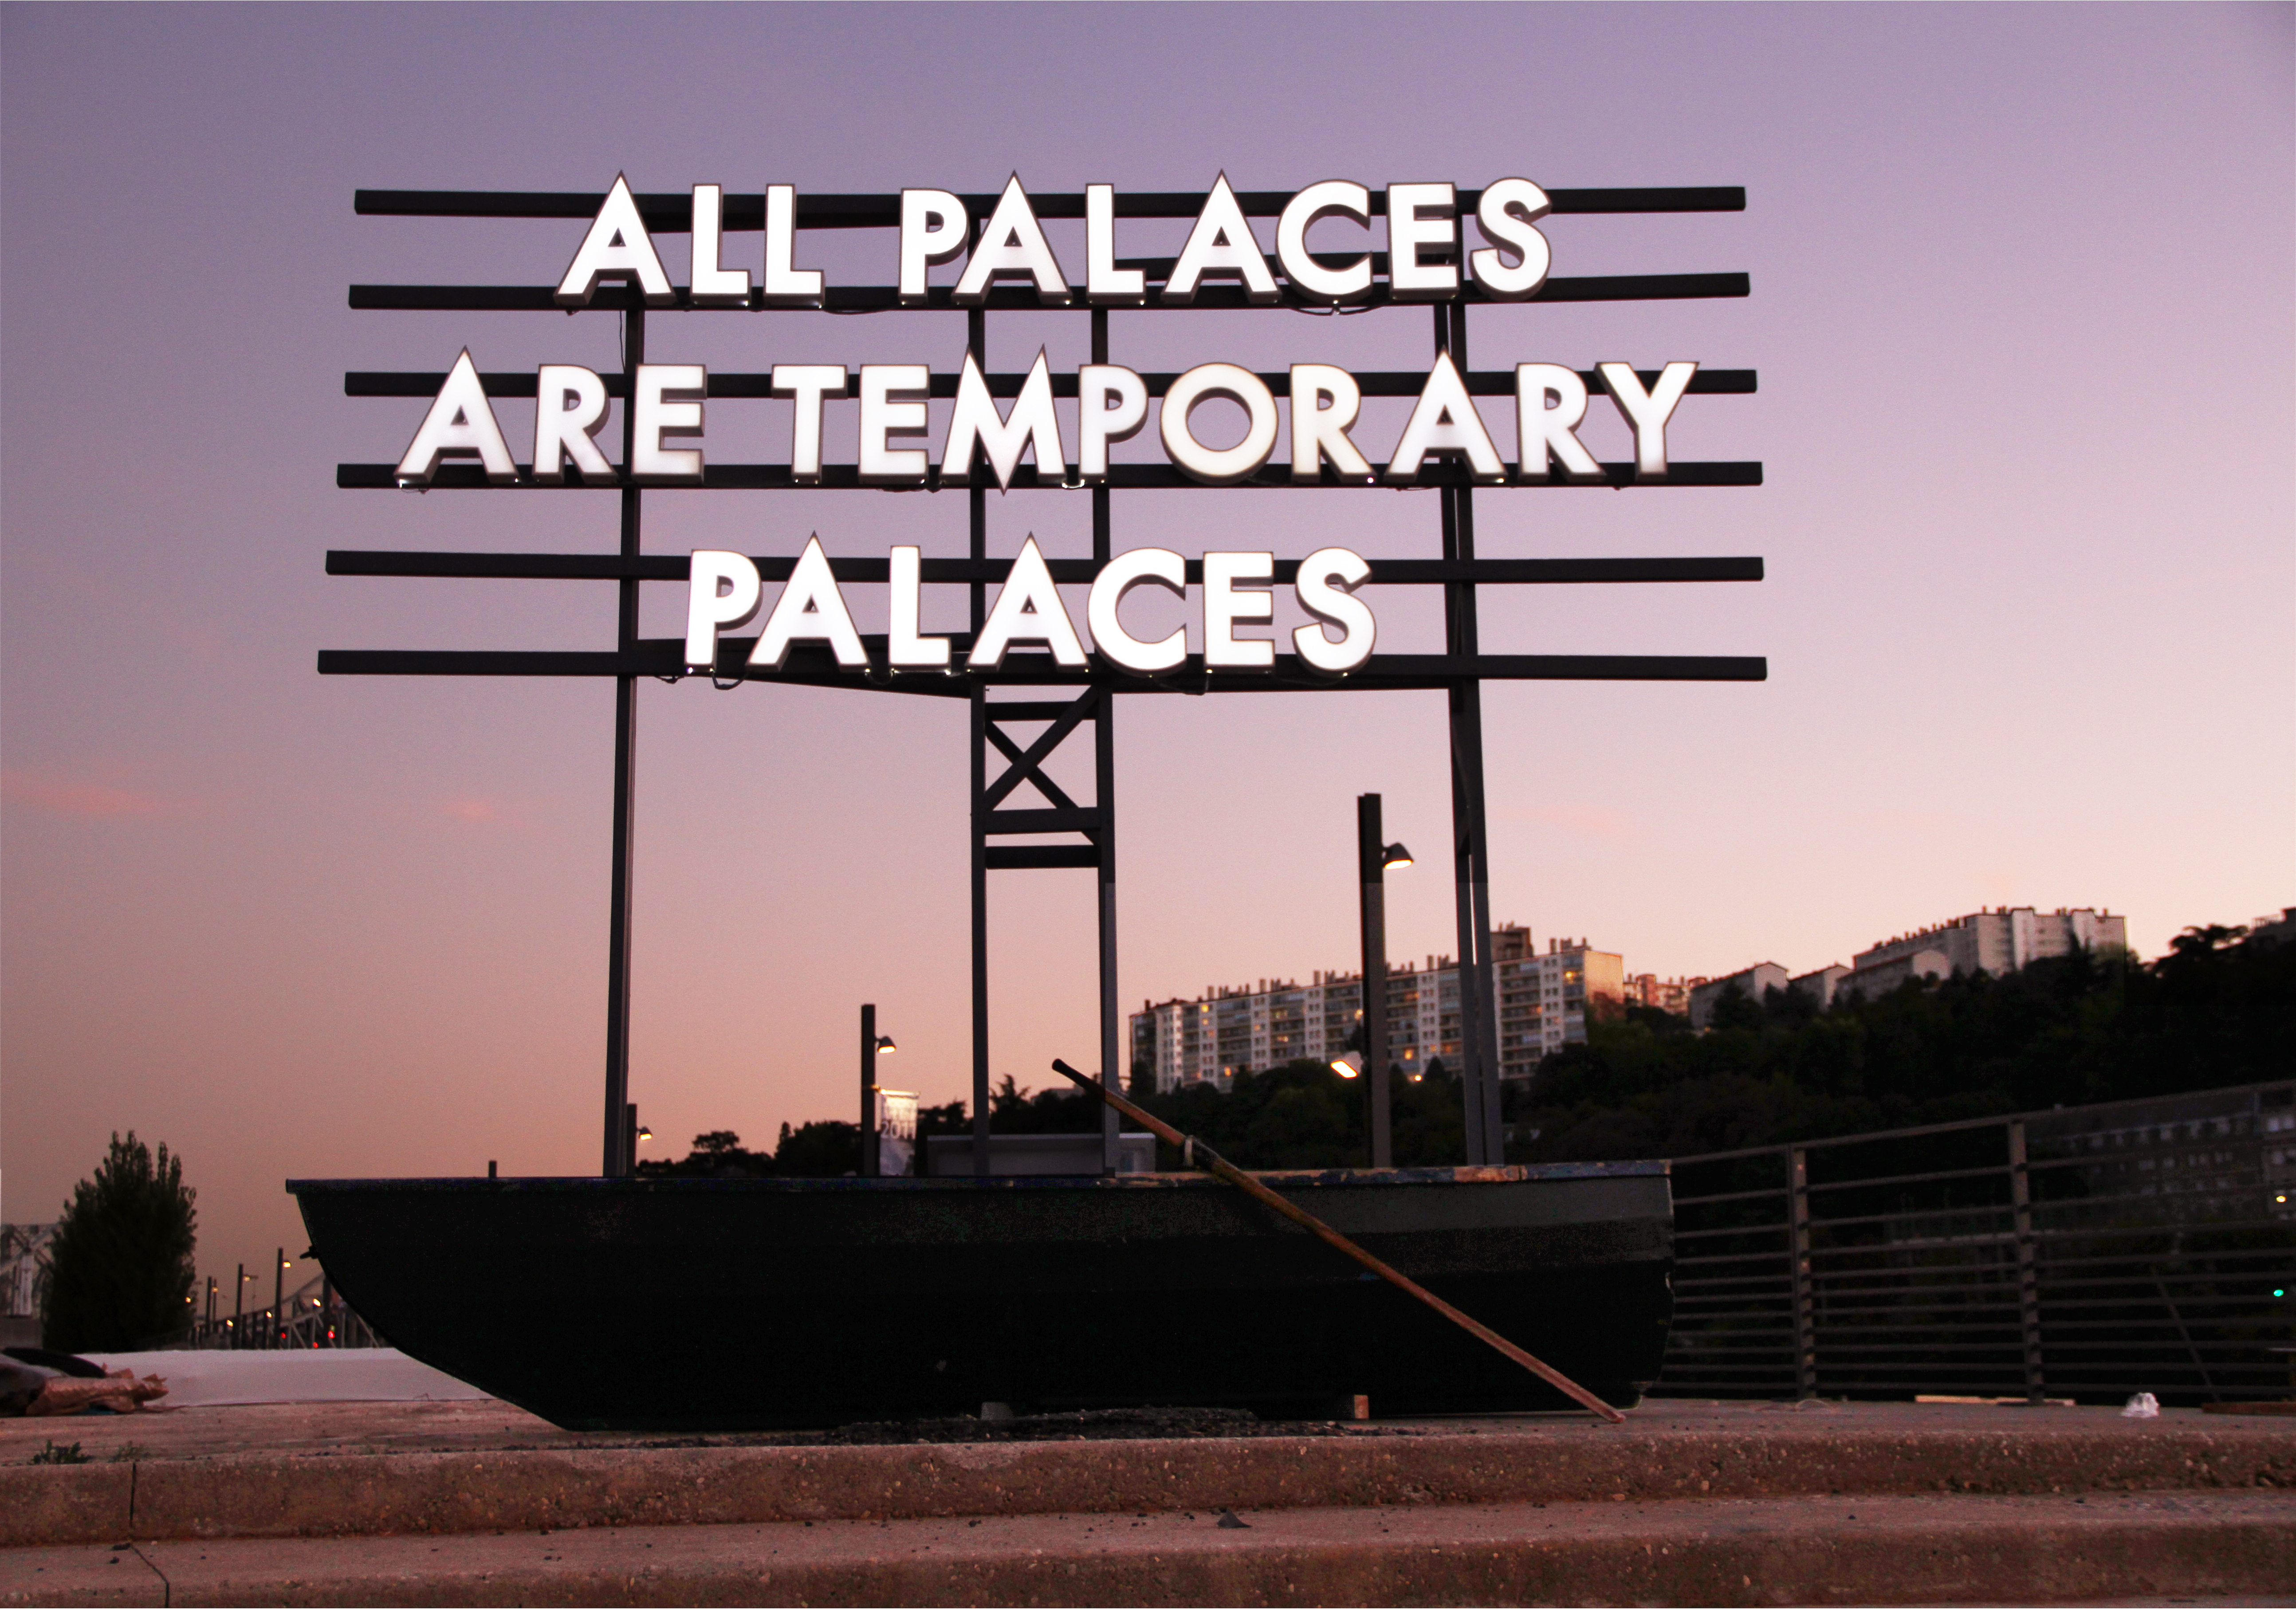 all-palaces-are-temporary-palaces-2011